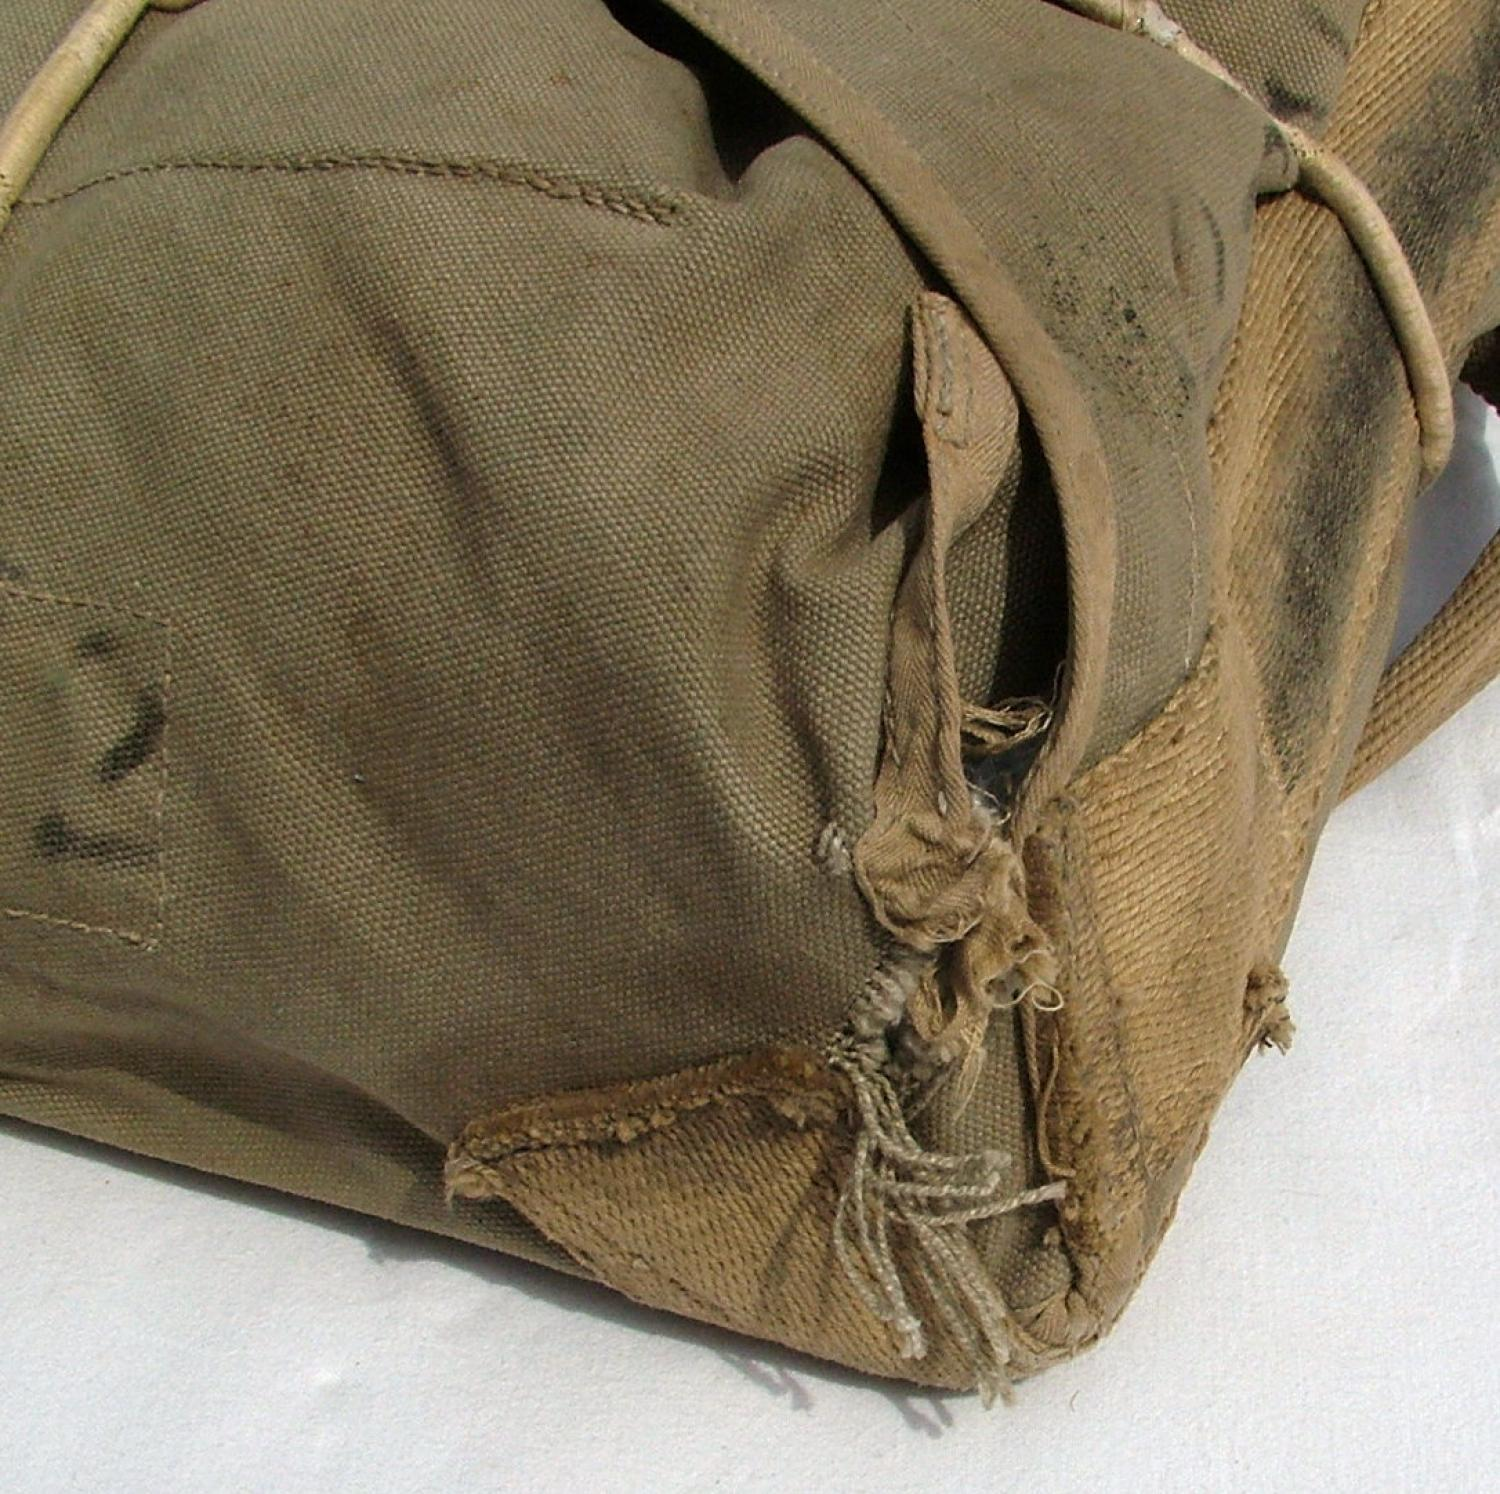 parachute how to pack ww2